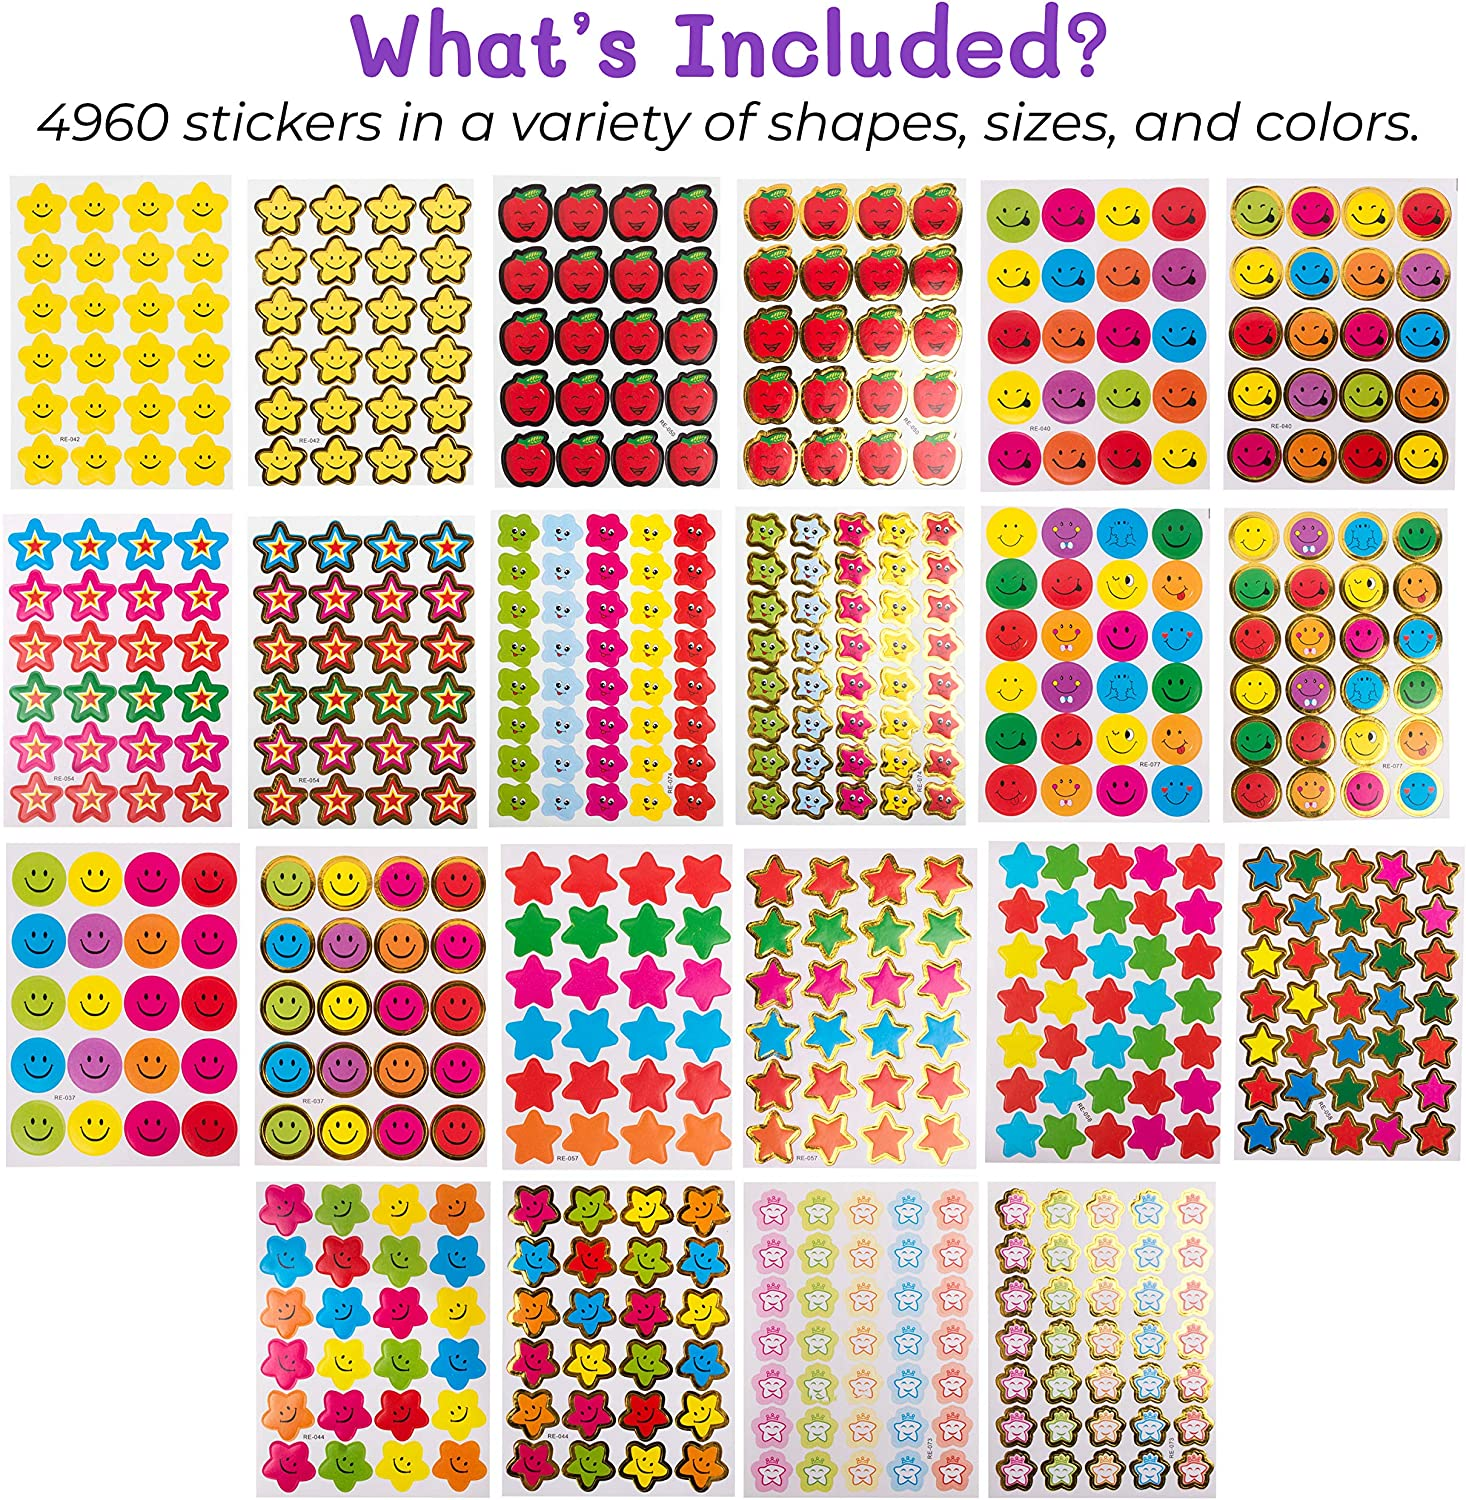 Purple Ladybug Teacher Stickers For Kids Mega Value Pack! 4960 Reward Stickers for Teachers & Incentive Stickers Sheets in Bulk for Classroom & School Use - with Star Stickers & Other styles Stickers! : Office Products